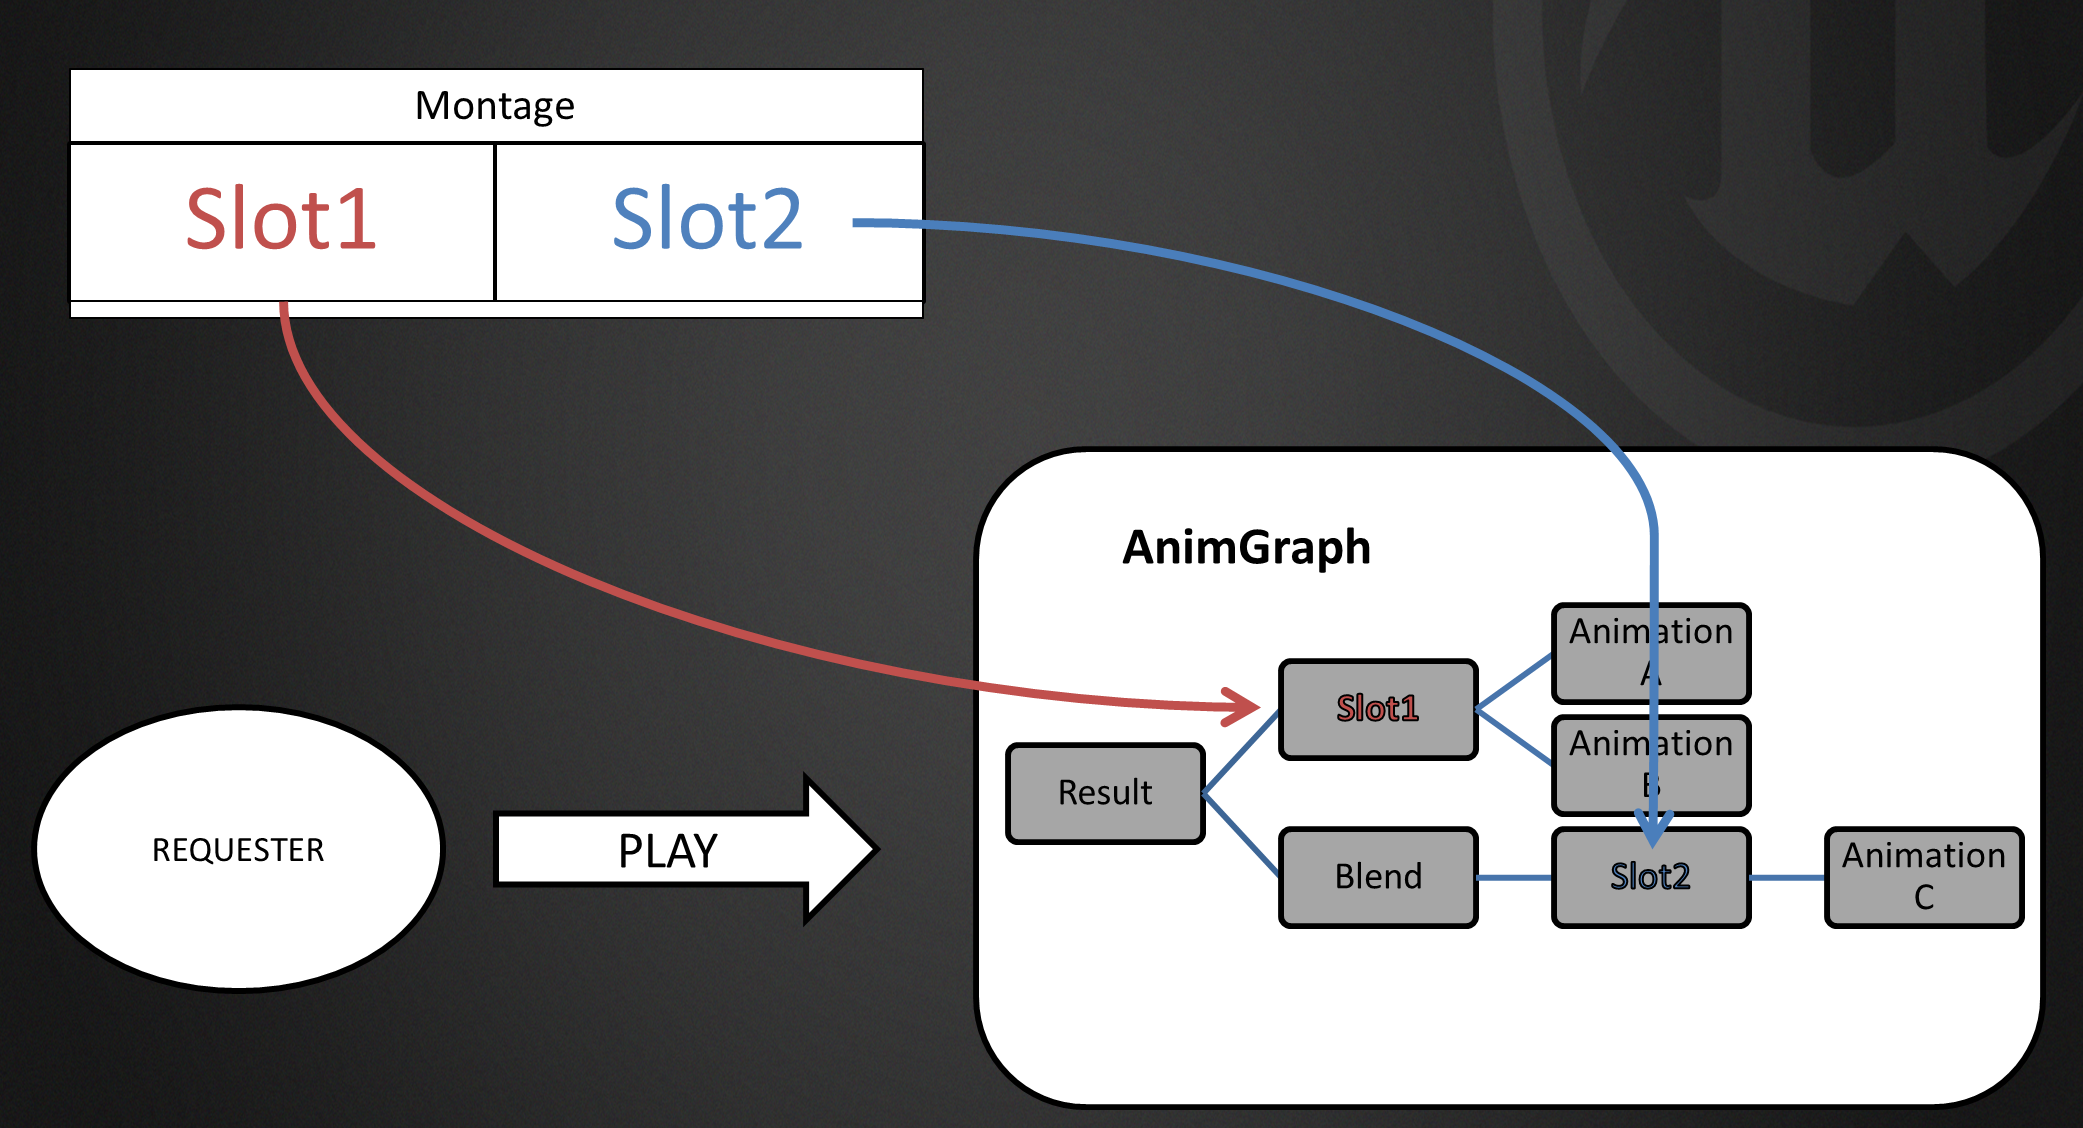 Relationship between AnimGraph and Montage